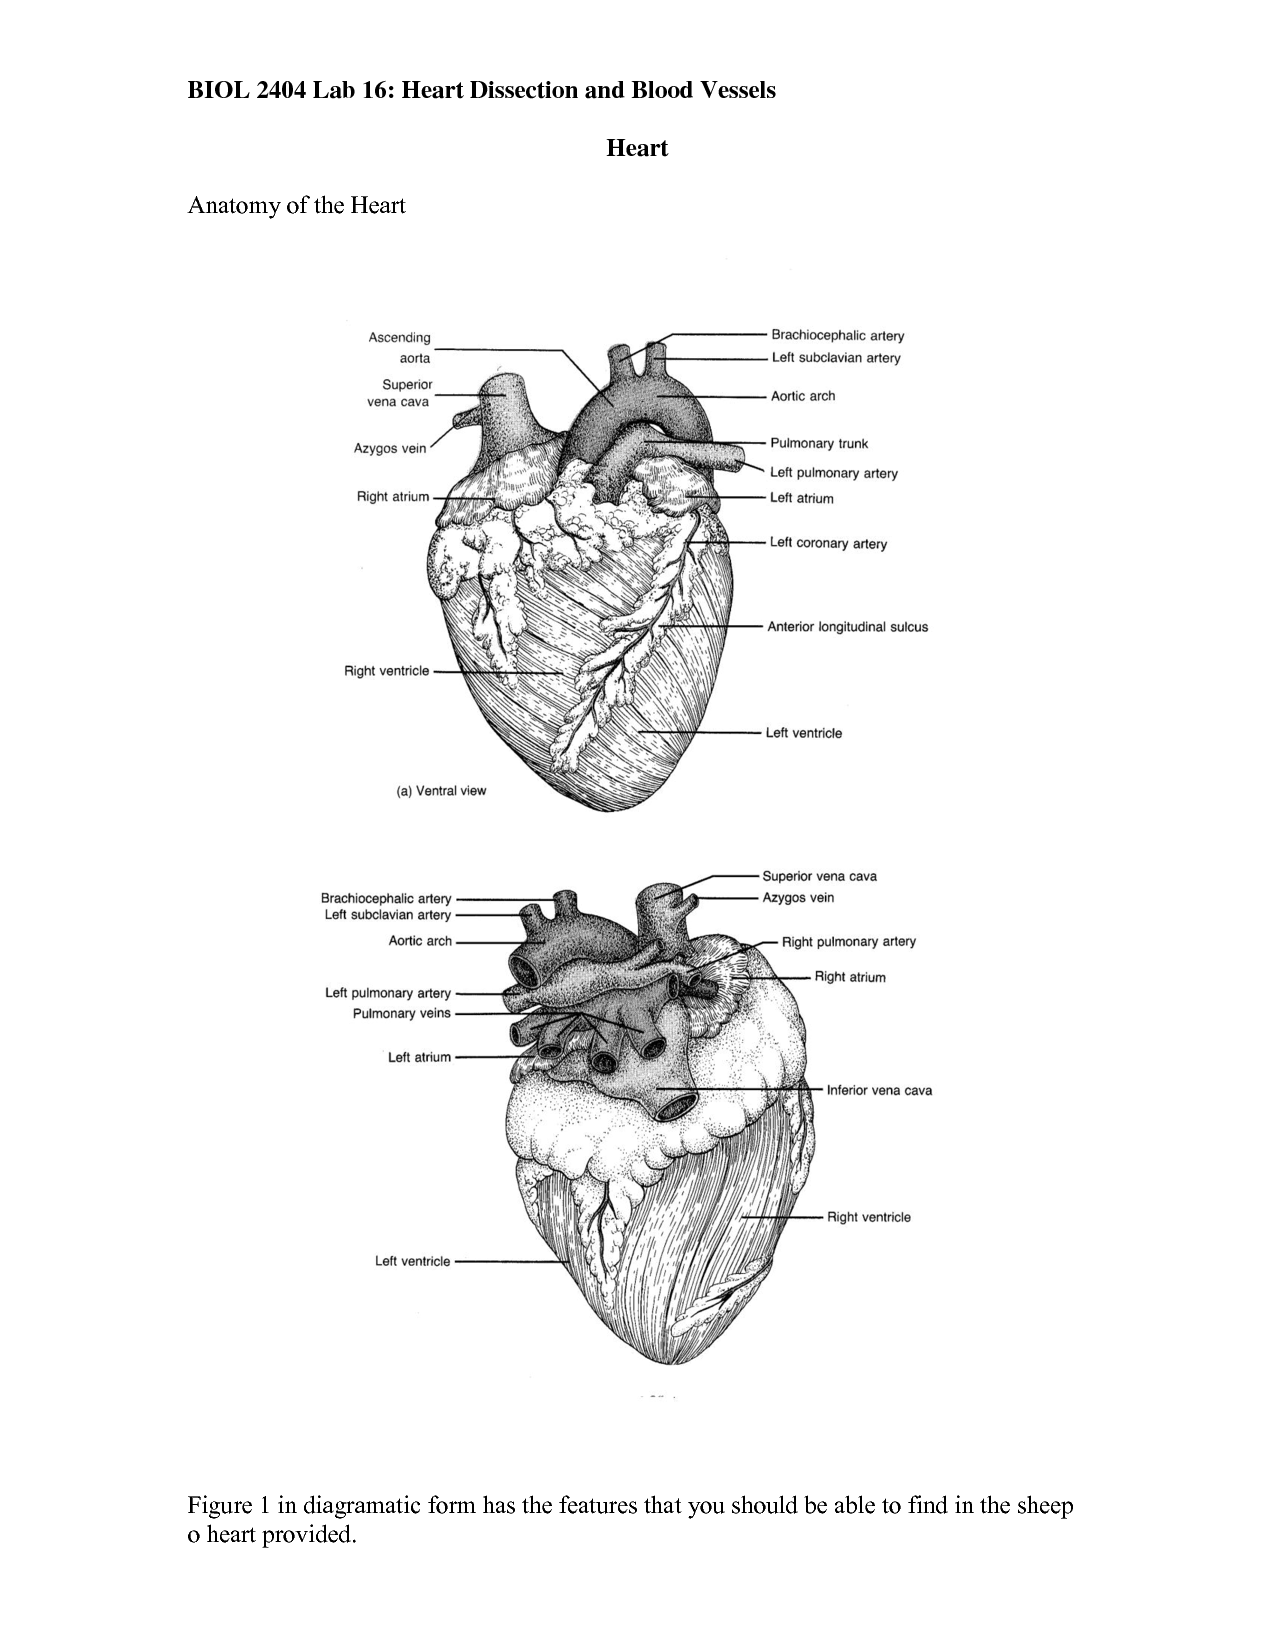 worksheet Sheep Heart Dissection Worksheet dissected quotes quotesgram follow us